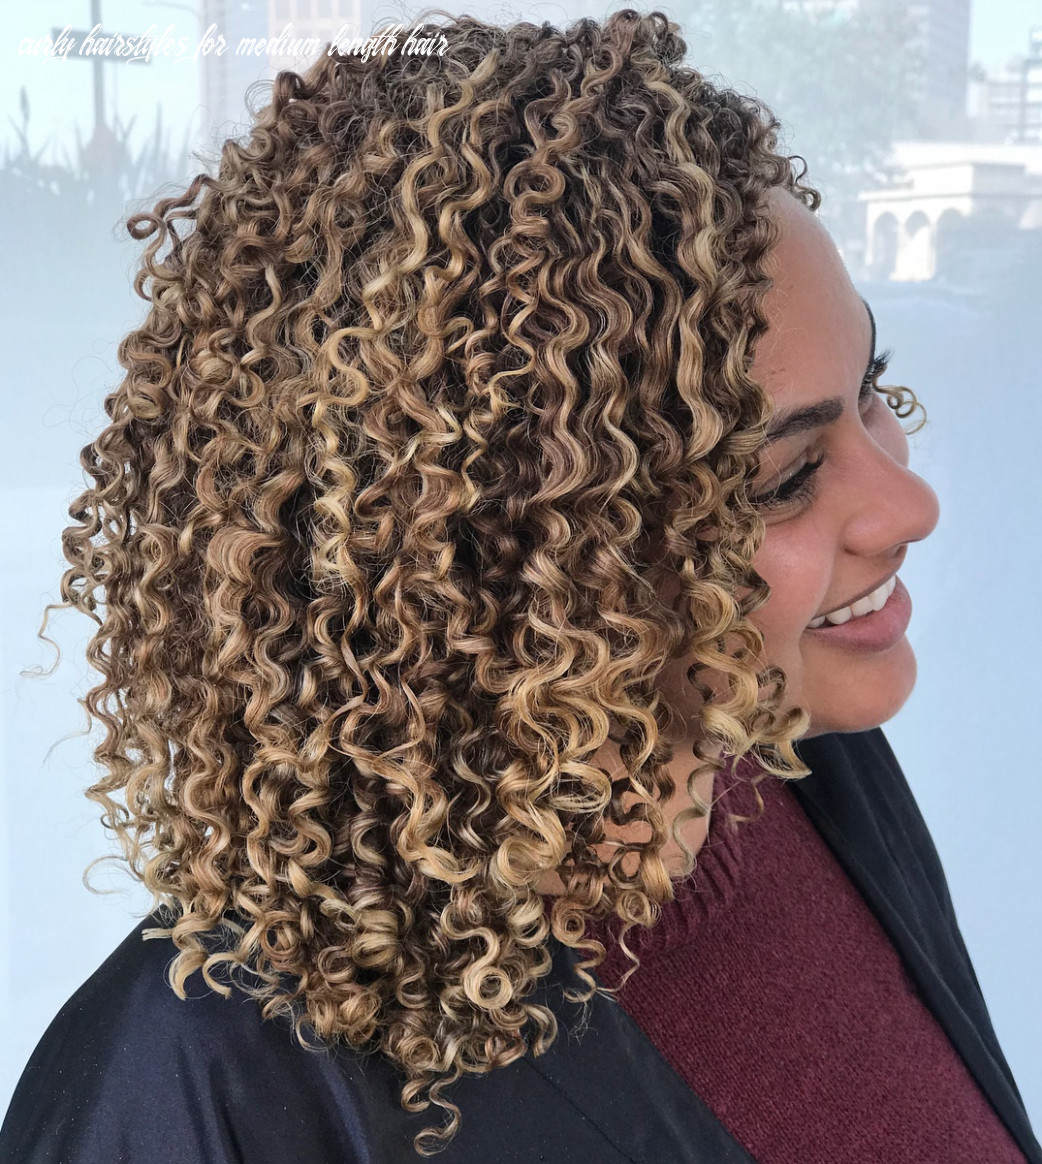 12 natural curly hairstyles & curly hair ideas to try in 12